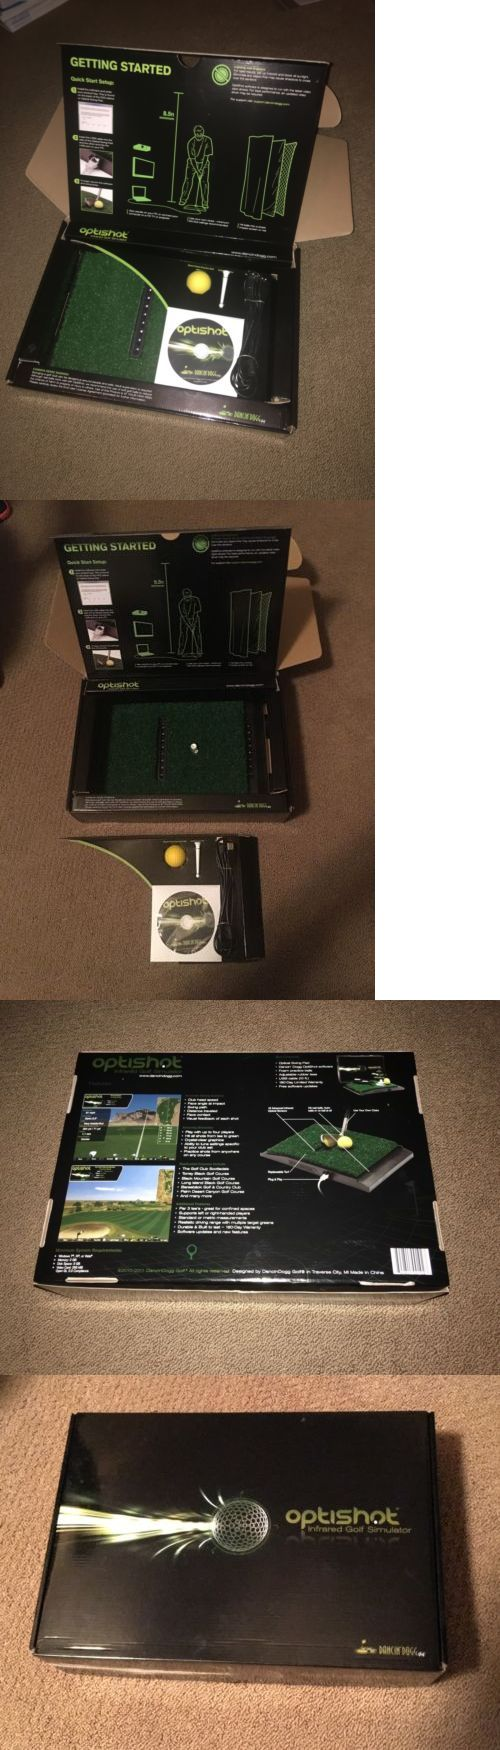 Swing Trainers 83037: Optishot Golf Simulator - New - Open Box -> BUY IT NOW ONLY: $250.0 on eBay!